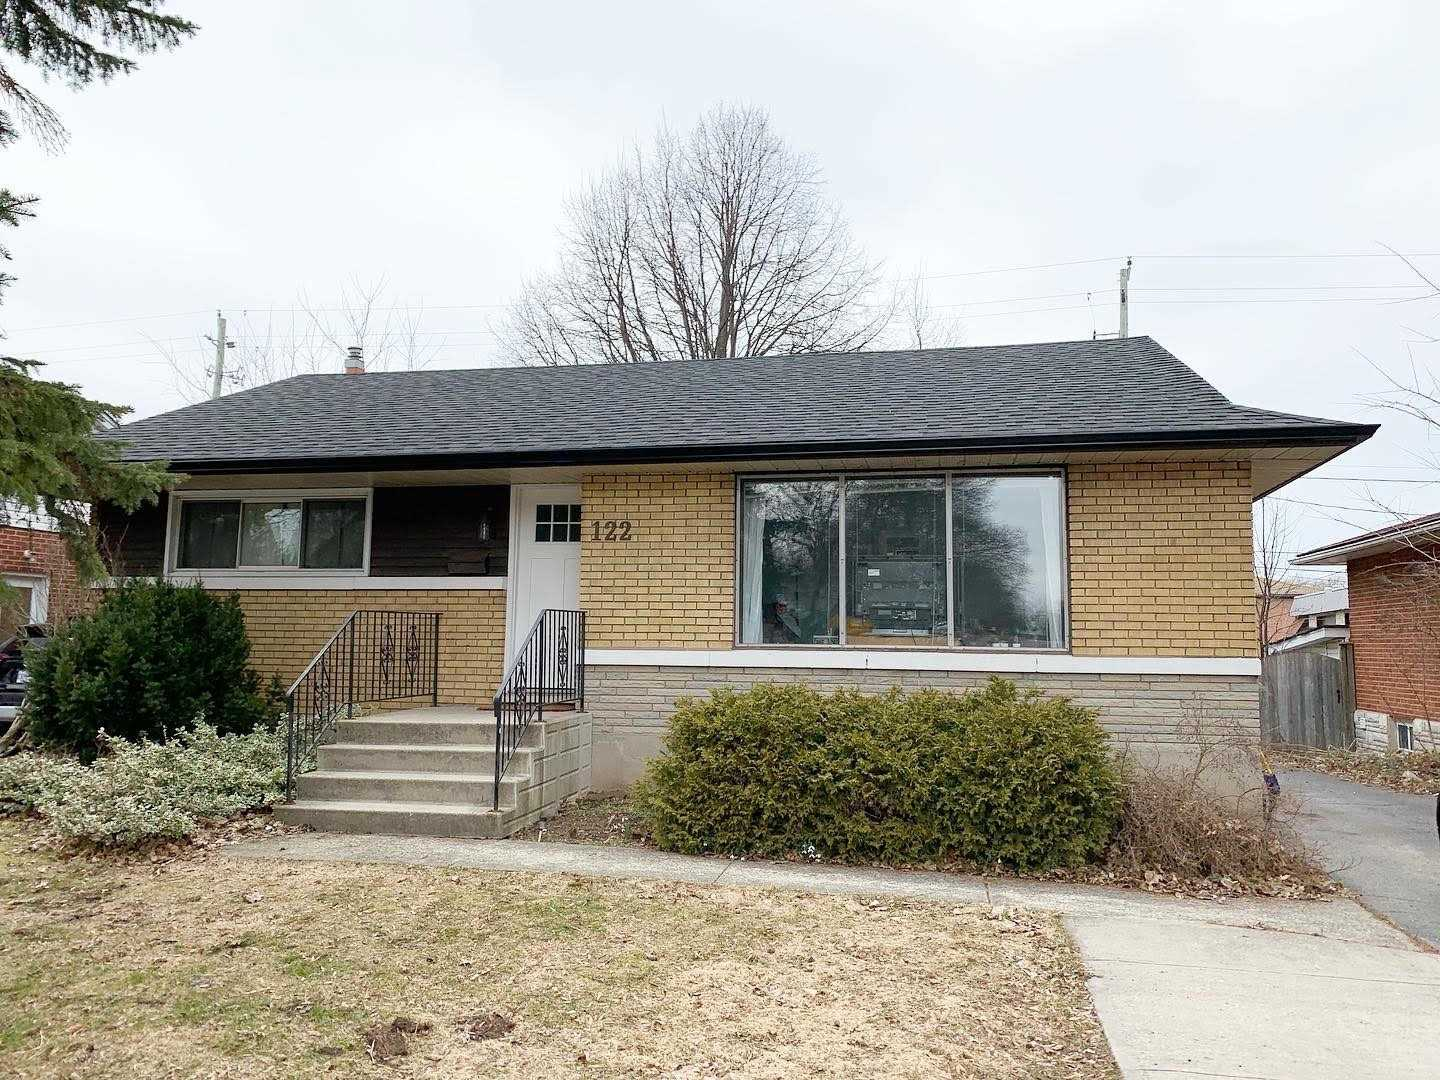 pictures of house for sale MLS: X4732973 located at 122 Marshall St, Waterloo N2J2T7